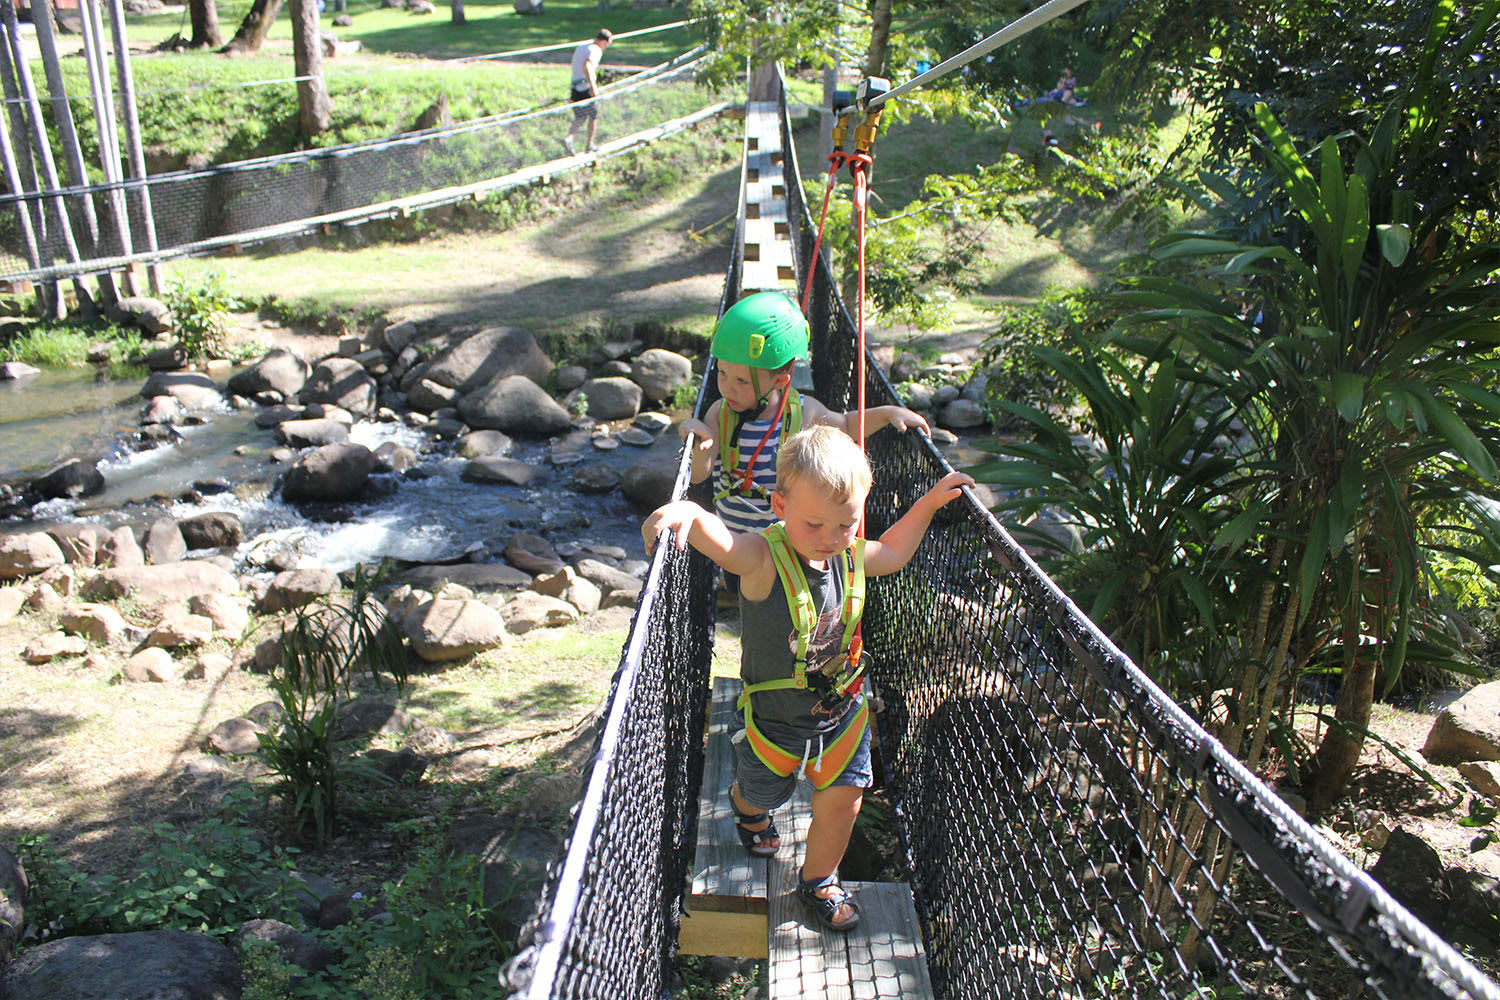 Tiny Tot's High Rope and Zipline Adventure, Tamborine Mountain - Child (aged 3-8)